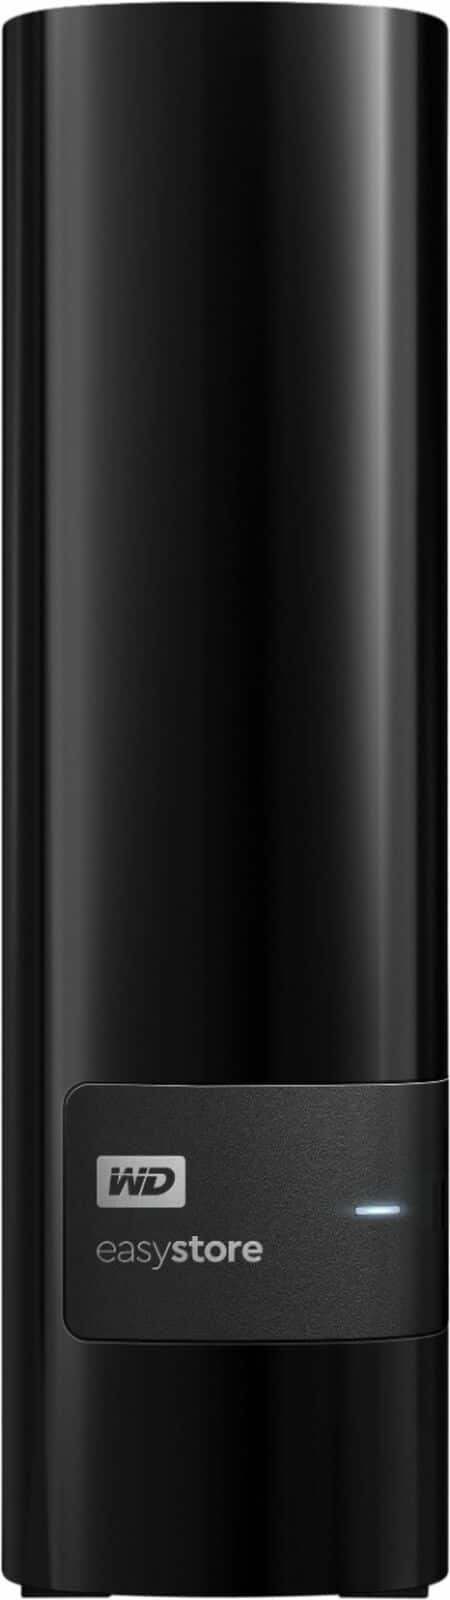 12TB Western Digital external hard drive $200 BestBuy via EBay